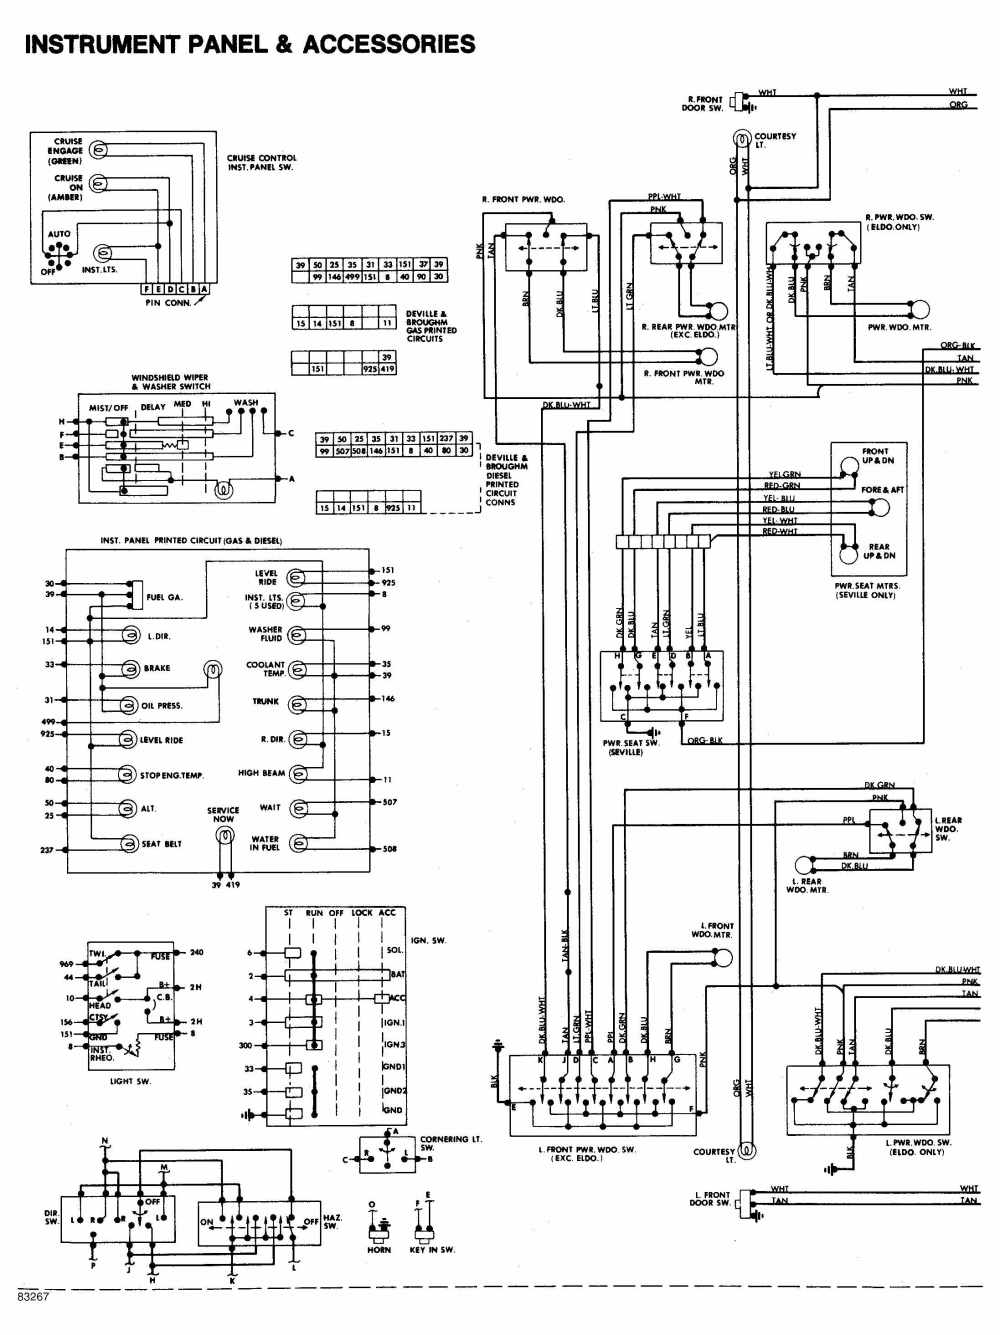 medium resolution of gm dash wiring diagrams wiring diagram todays instrument panel wiring harness chevy diagrams 86 chevy truck